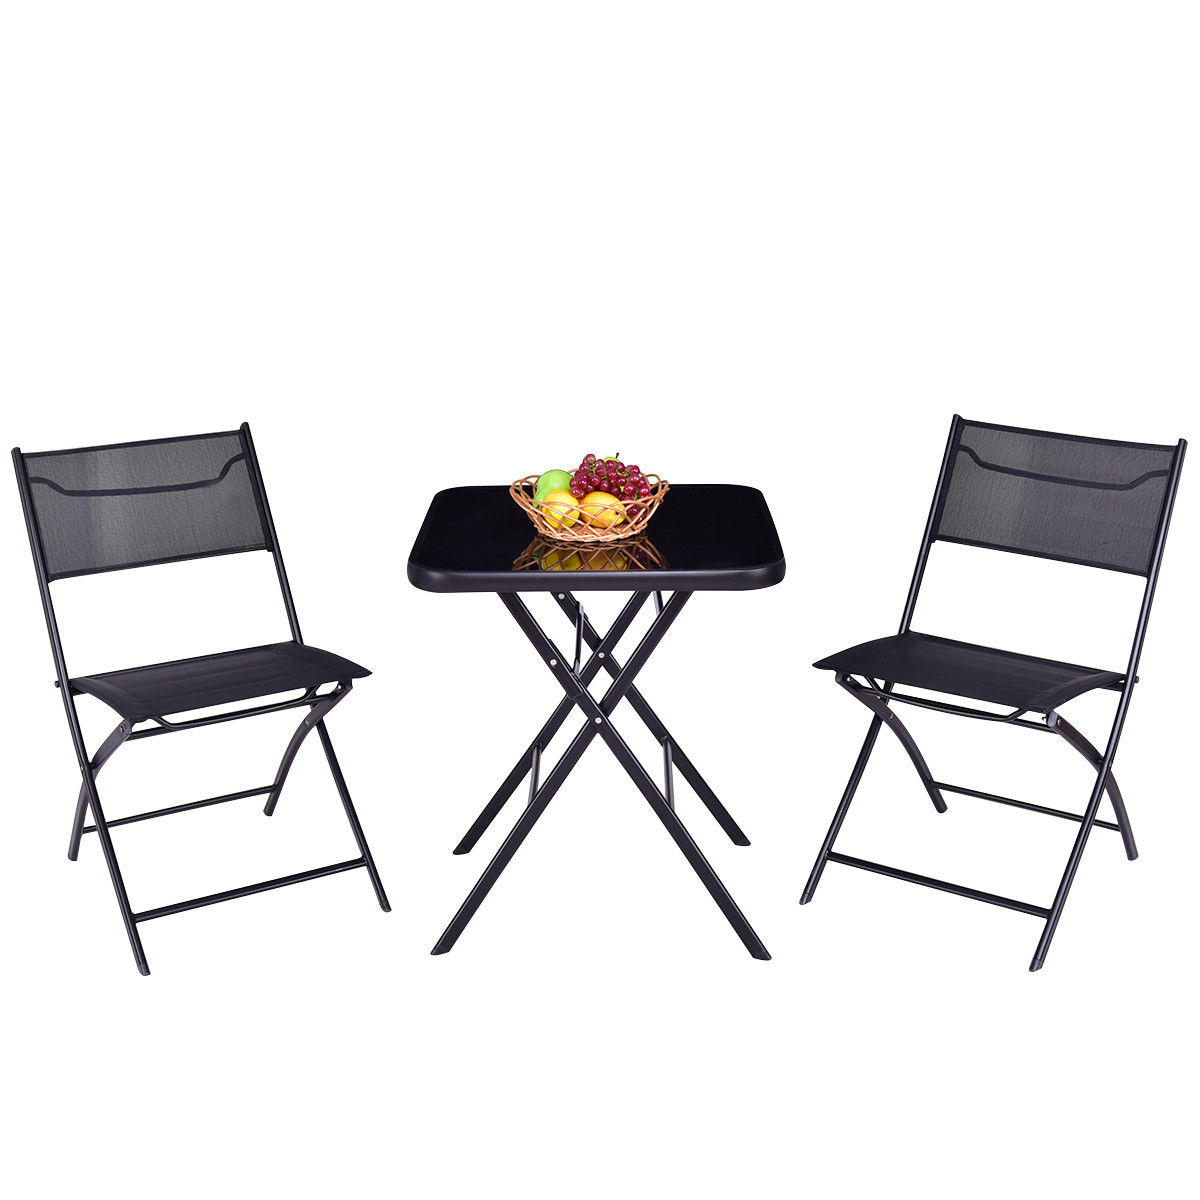 GHP Outdoor 3-Pcs Black Sturdy Durable Steel Folding Square Table and Chairs Set